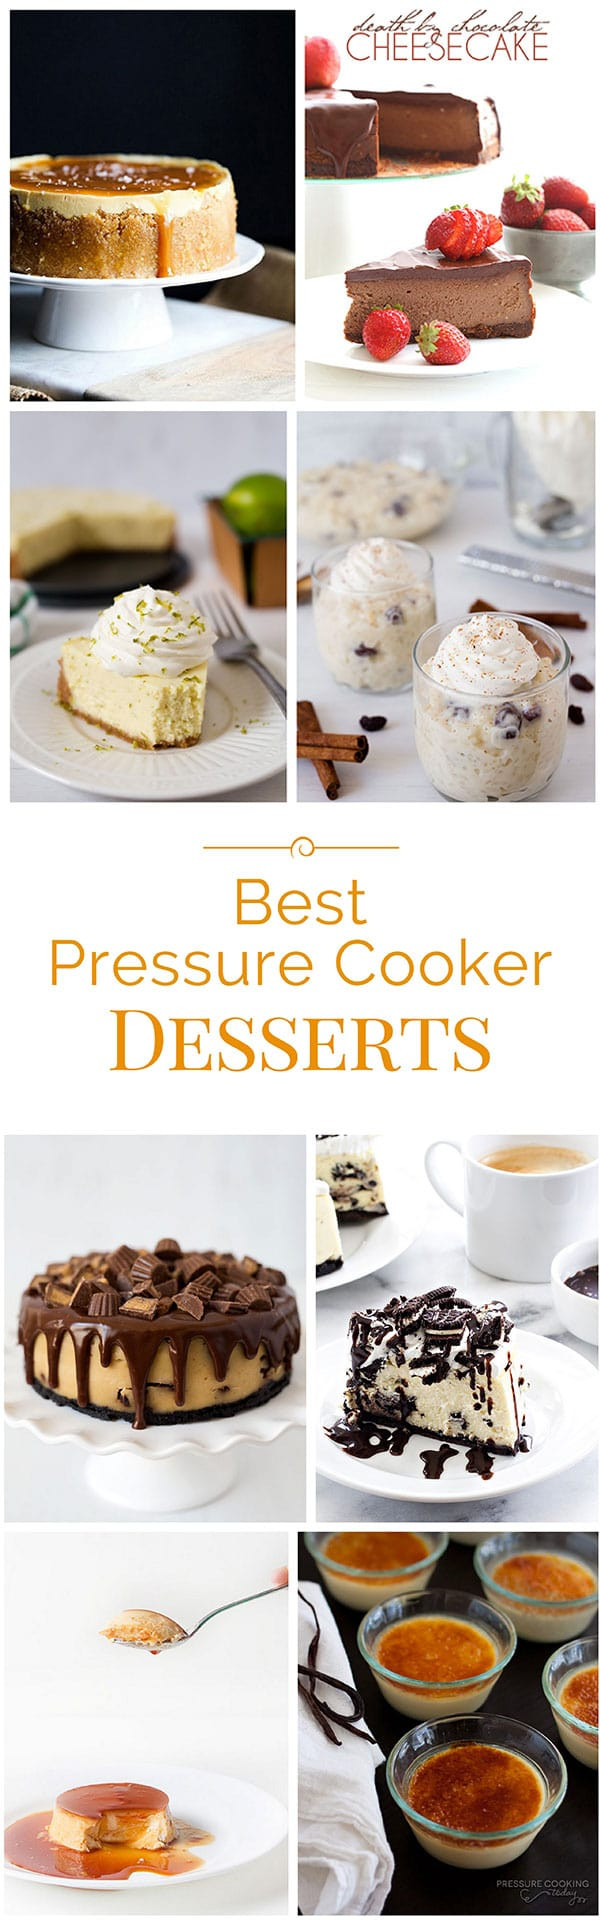 Pressure Cooker Dessert Recipes  Best Instant Pot Pressure Cooker Desserts Recipes